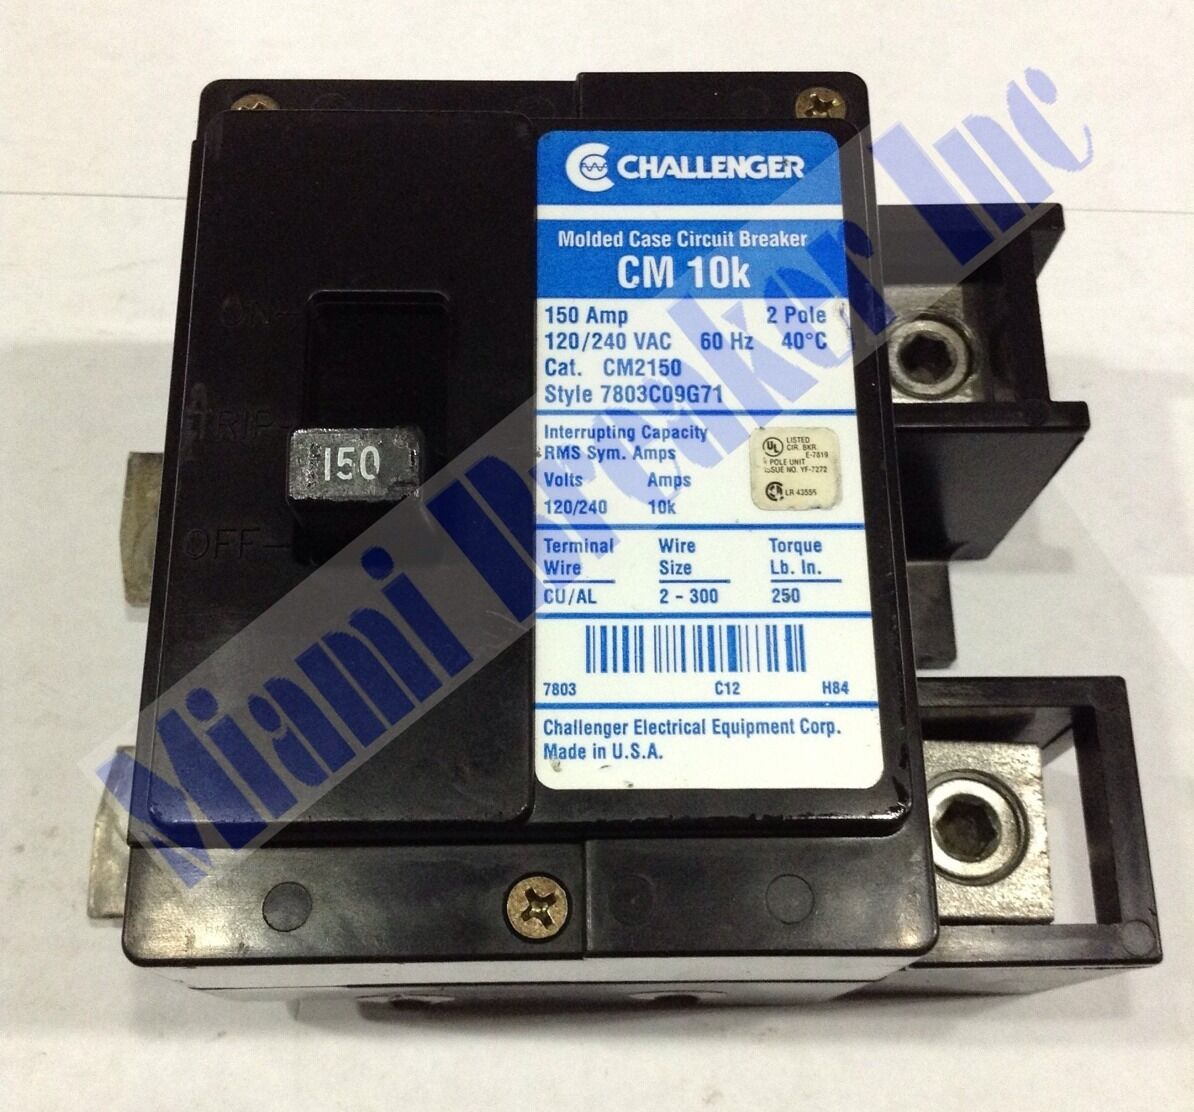 Cm2150 Challenger Type Cm 10k Blue Label Circuit Breaker 2 Pole 150 Home Fuse Box 1 Of 1only Available